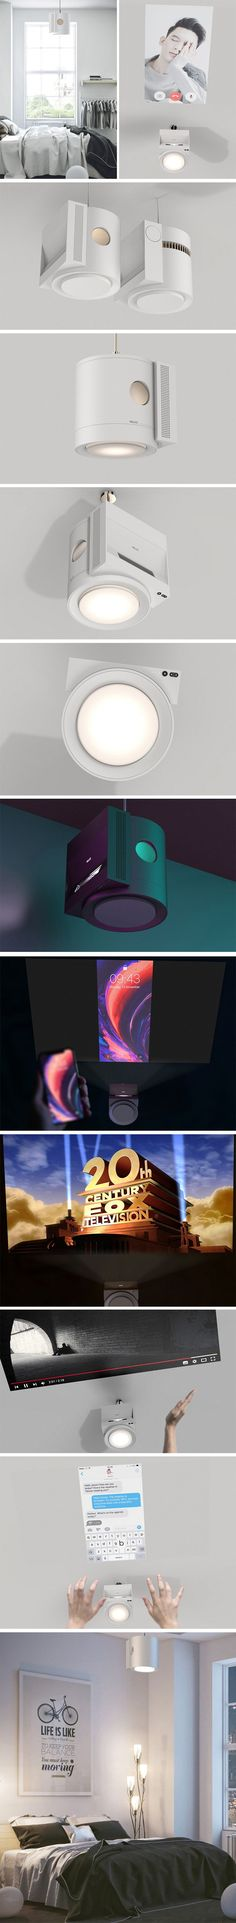 Helion is an ultrashort-through projector that takes the place of the ceiling light usually found above the bed. It projects the screen of the user's device directly onto the ceiling, allowing for a comfortable viewing position. Using gesture controls the user is able to message friends, mindlessly scroll through social media or operate video controls.